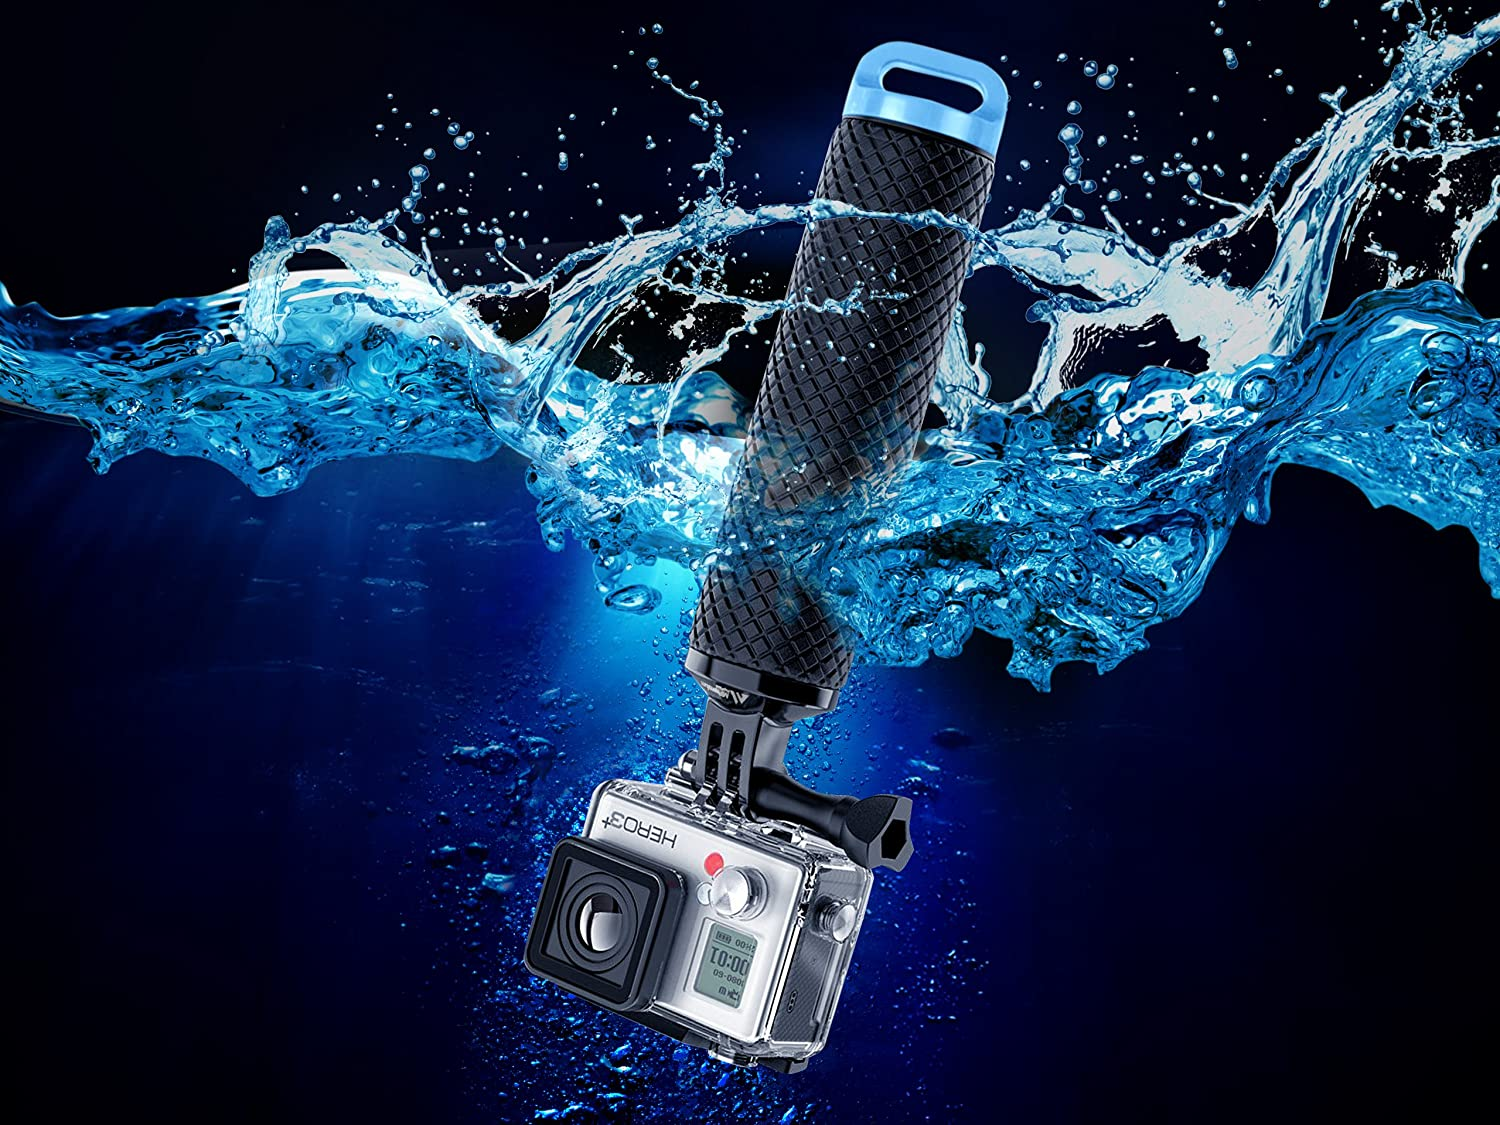 Waterproof Floating Hand Grip Compatible with GoPro Hero 8 7 6 5 4 3+ 2 1 Session Black Silver Camera Handler & Handle Mount Accessories Kit for Water Sport and All Action Cameras (Blue) : Camera & Photo